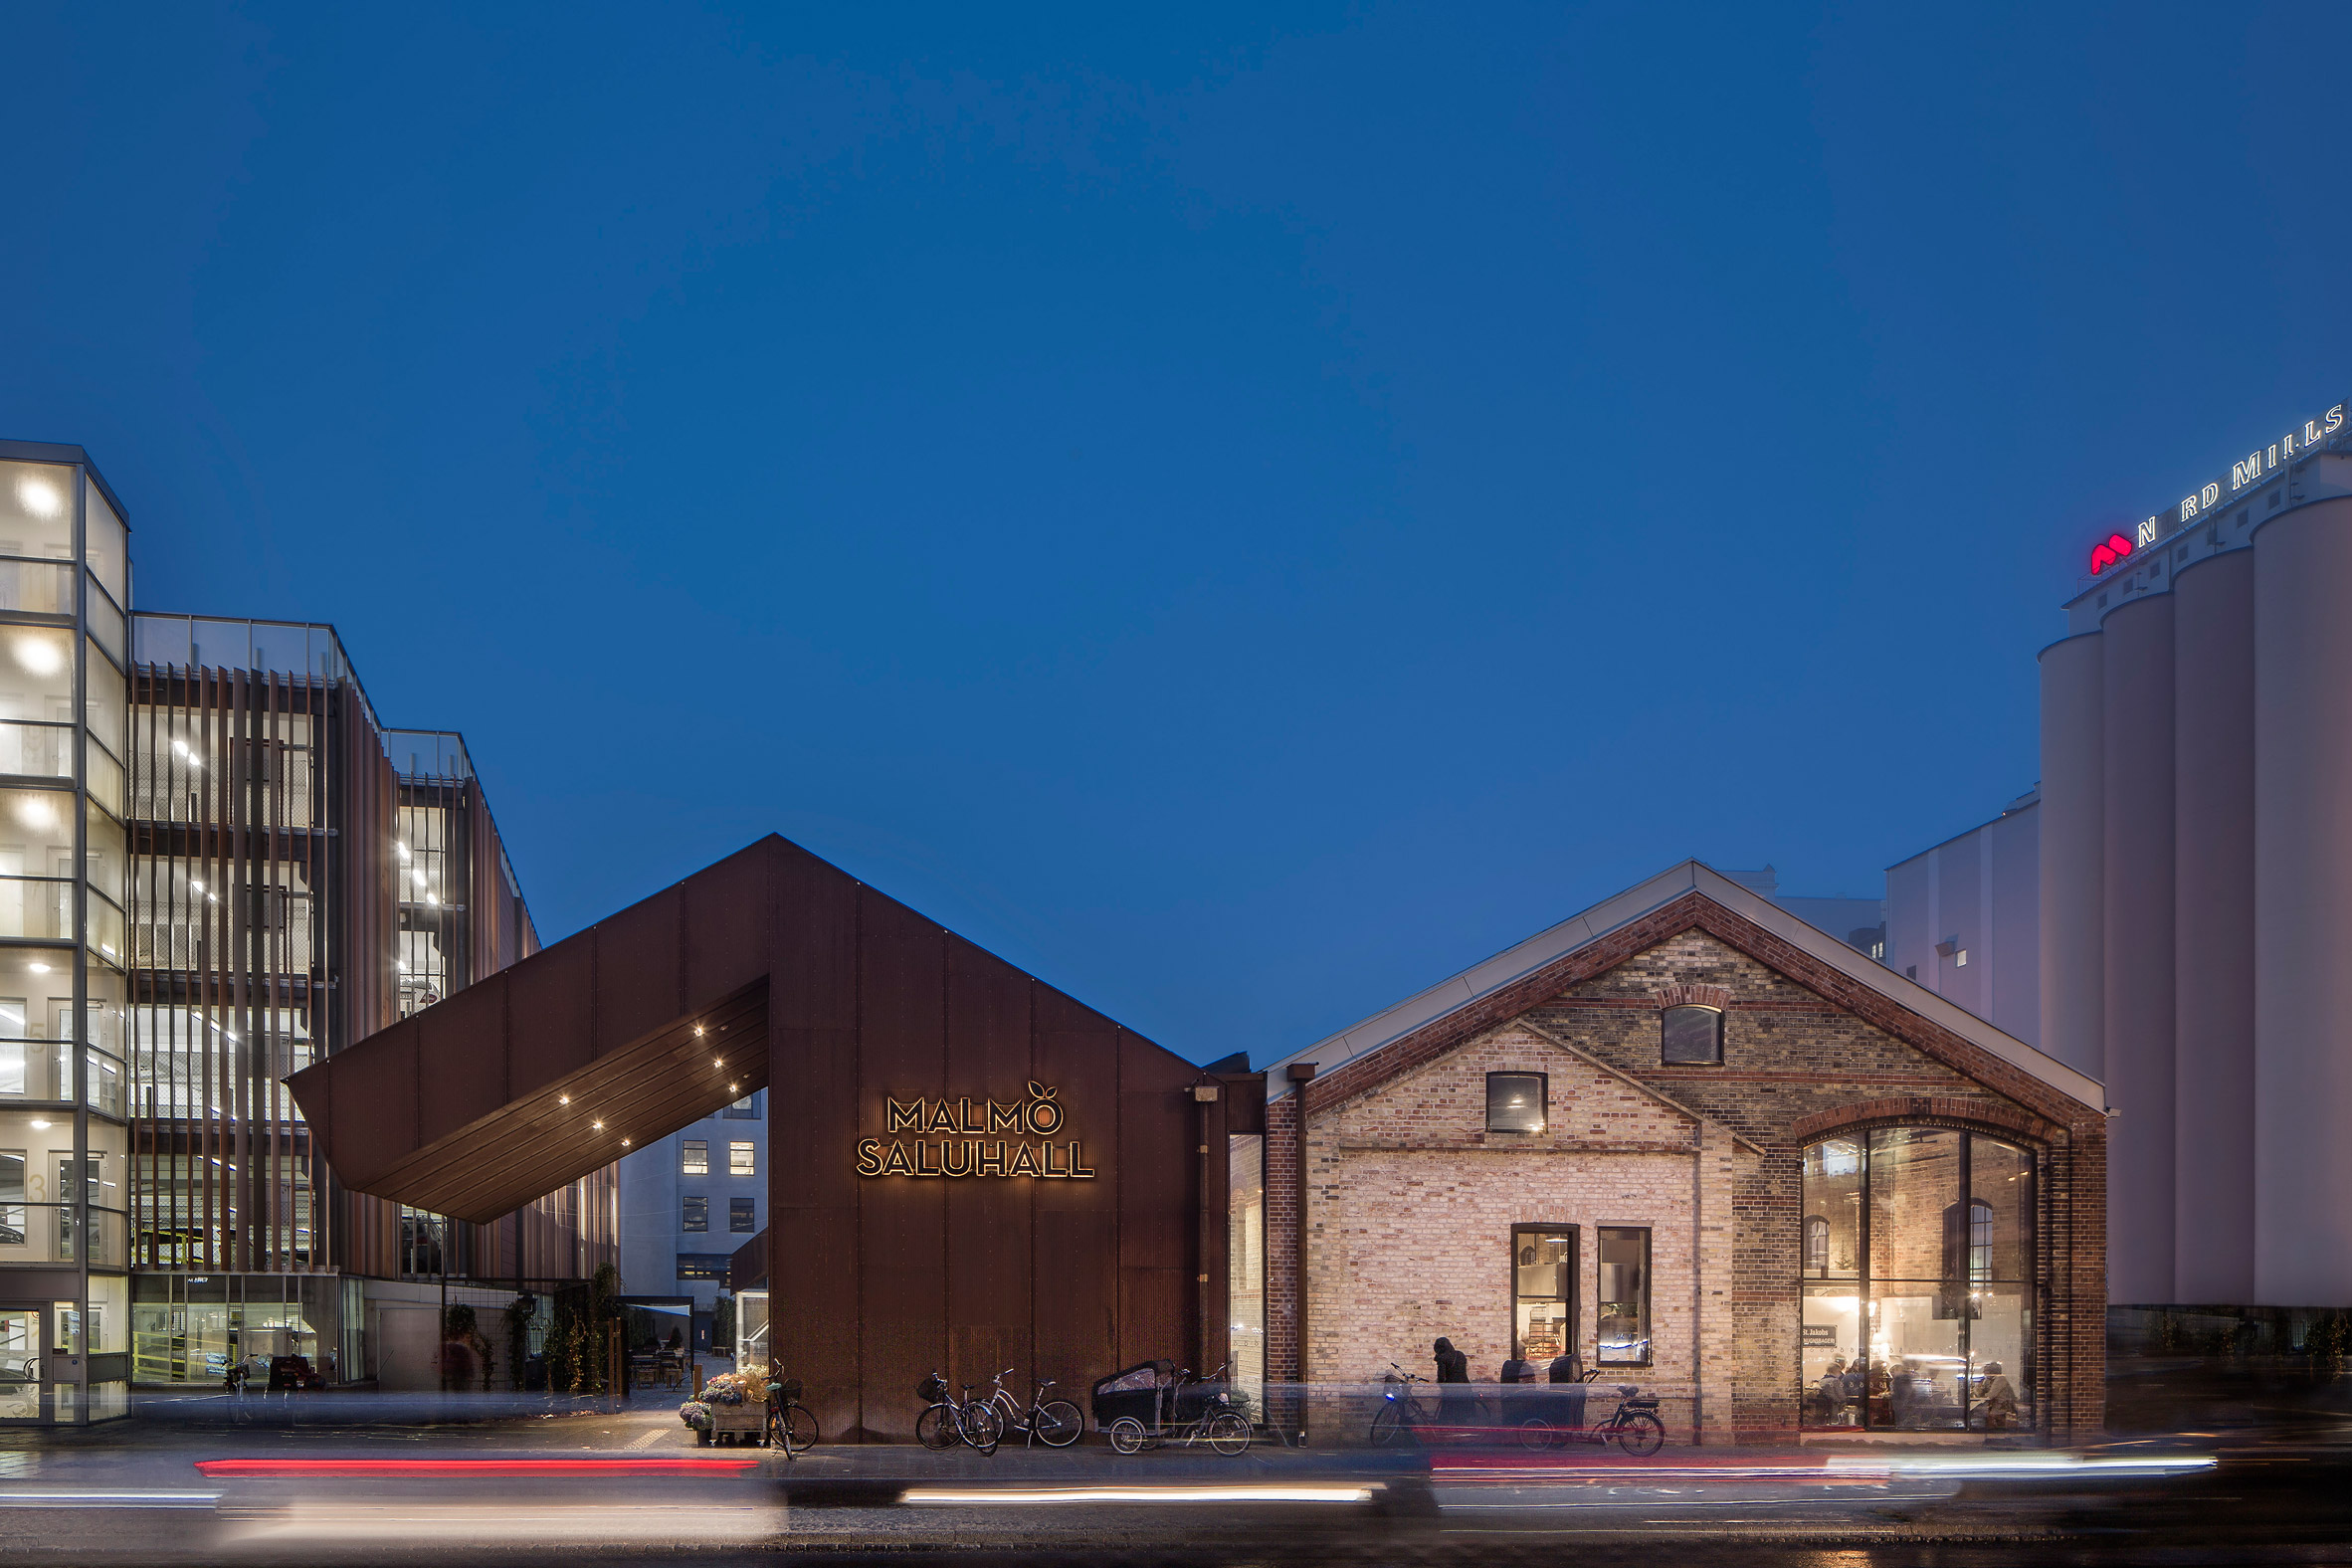 Wingårdh transforms roofless freight depot into Malmö Market Hall